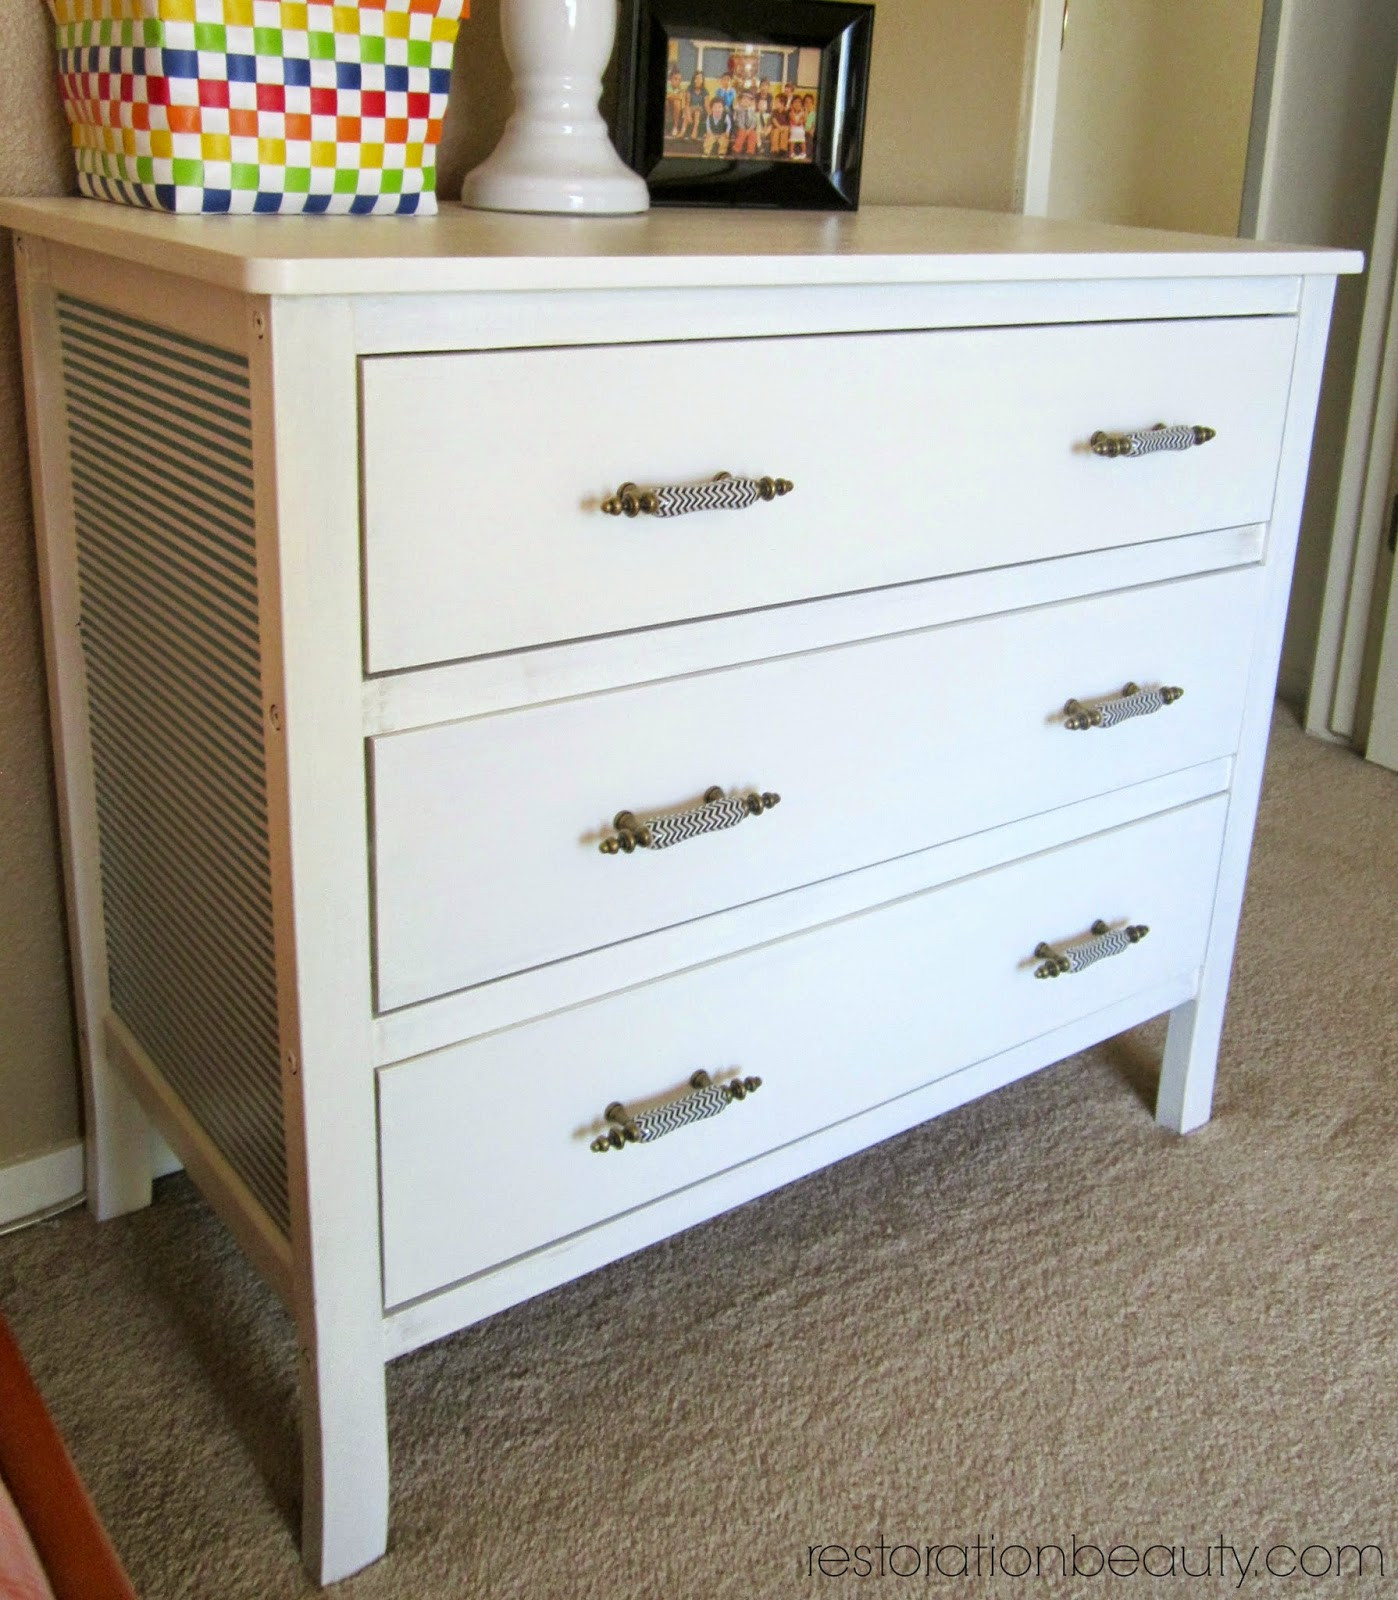 Best ideas about Paint Dresser DIY . Save or Pin Restoration Beauty Dresser Makeover Using DIY Chalk Paint Now.